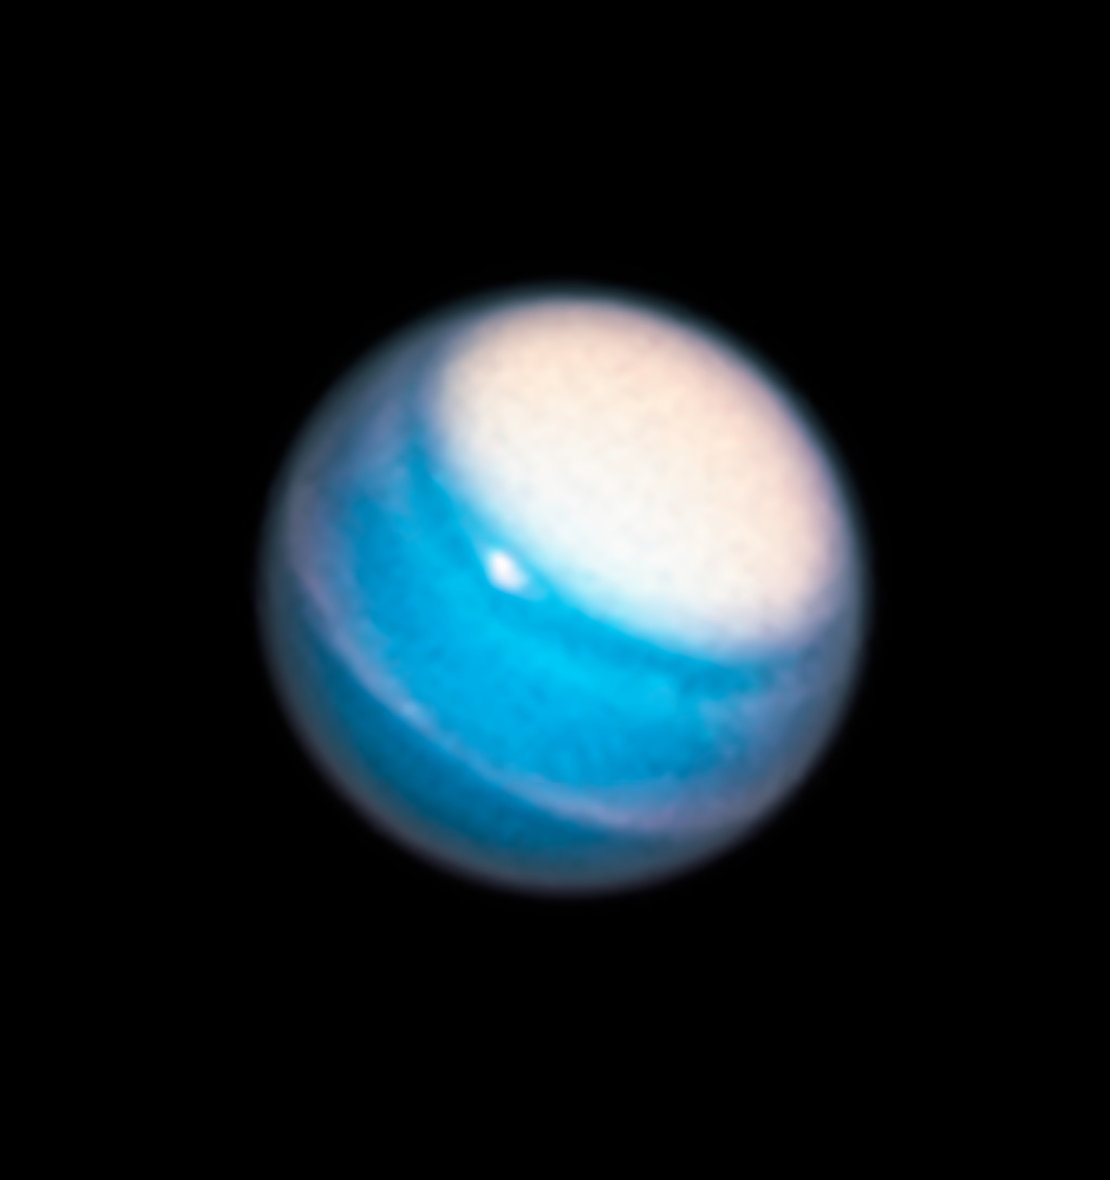 Adding to Uranus's legacy